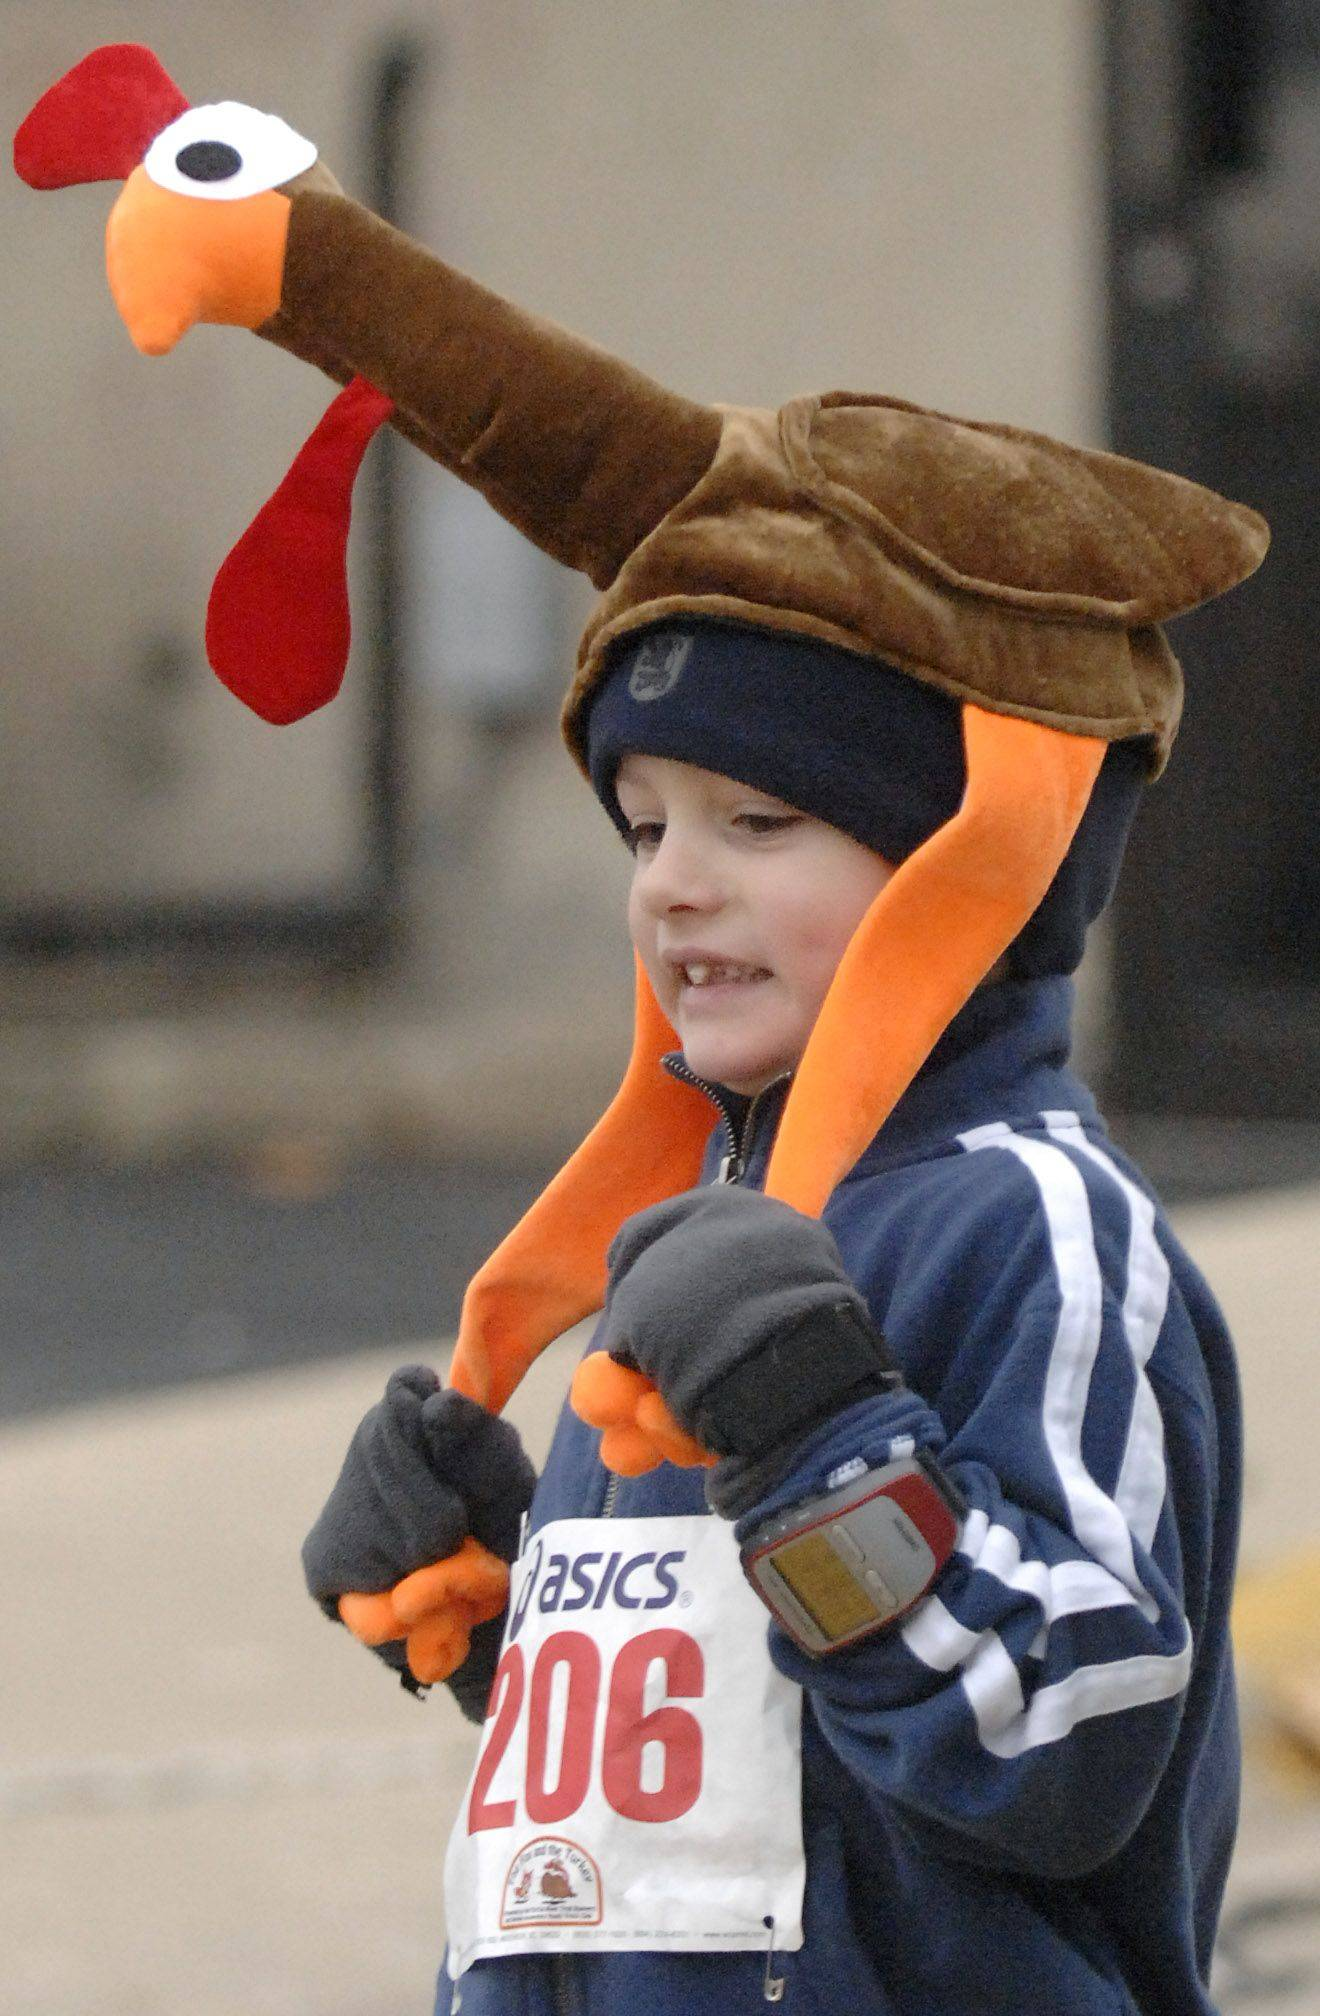 Lucas Rohan, 6, of Batavia hangs on tight to the legs of his turkey hat to keep it in place as he nears the finish line during the 15th annual Fox and the Turkey Youth Mile in Batavia on Thanksgiving morning.